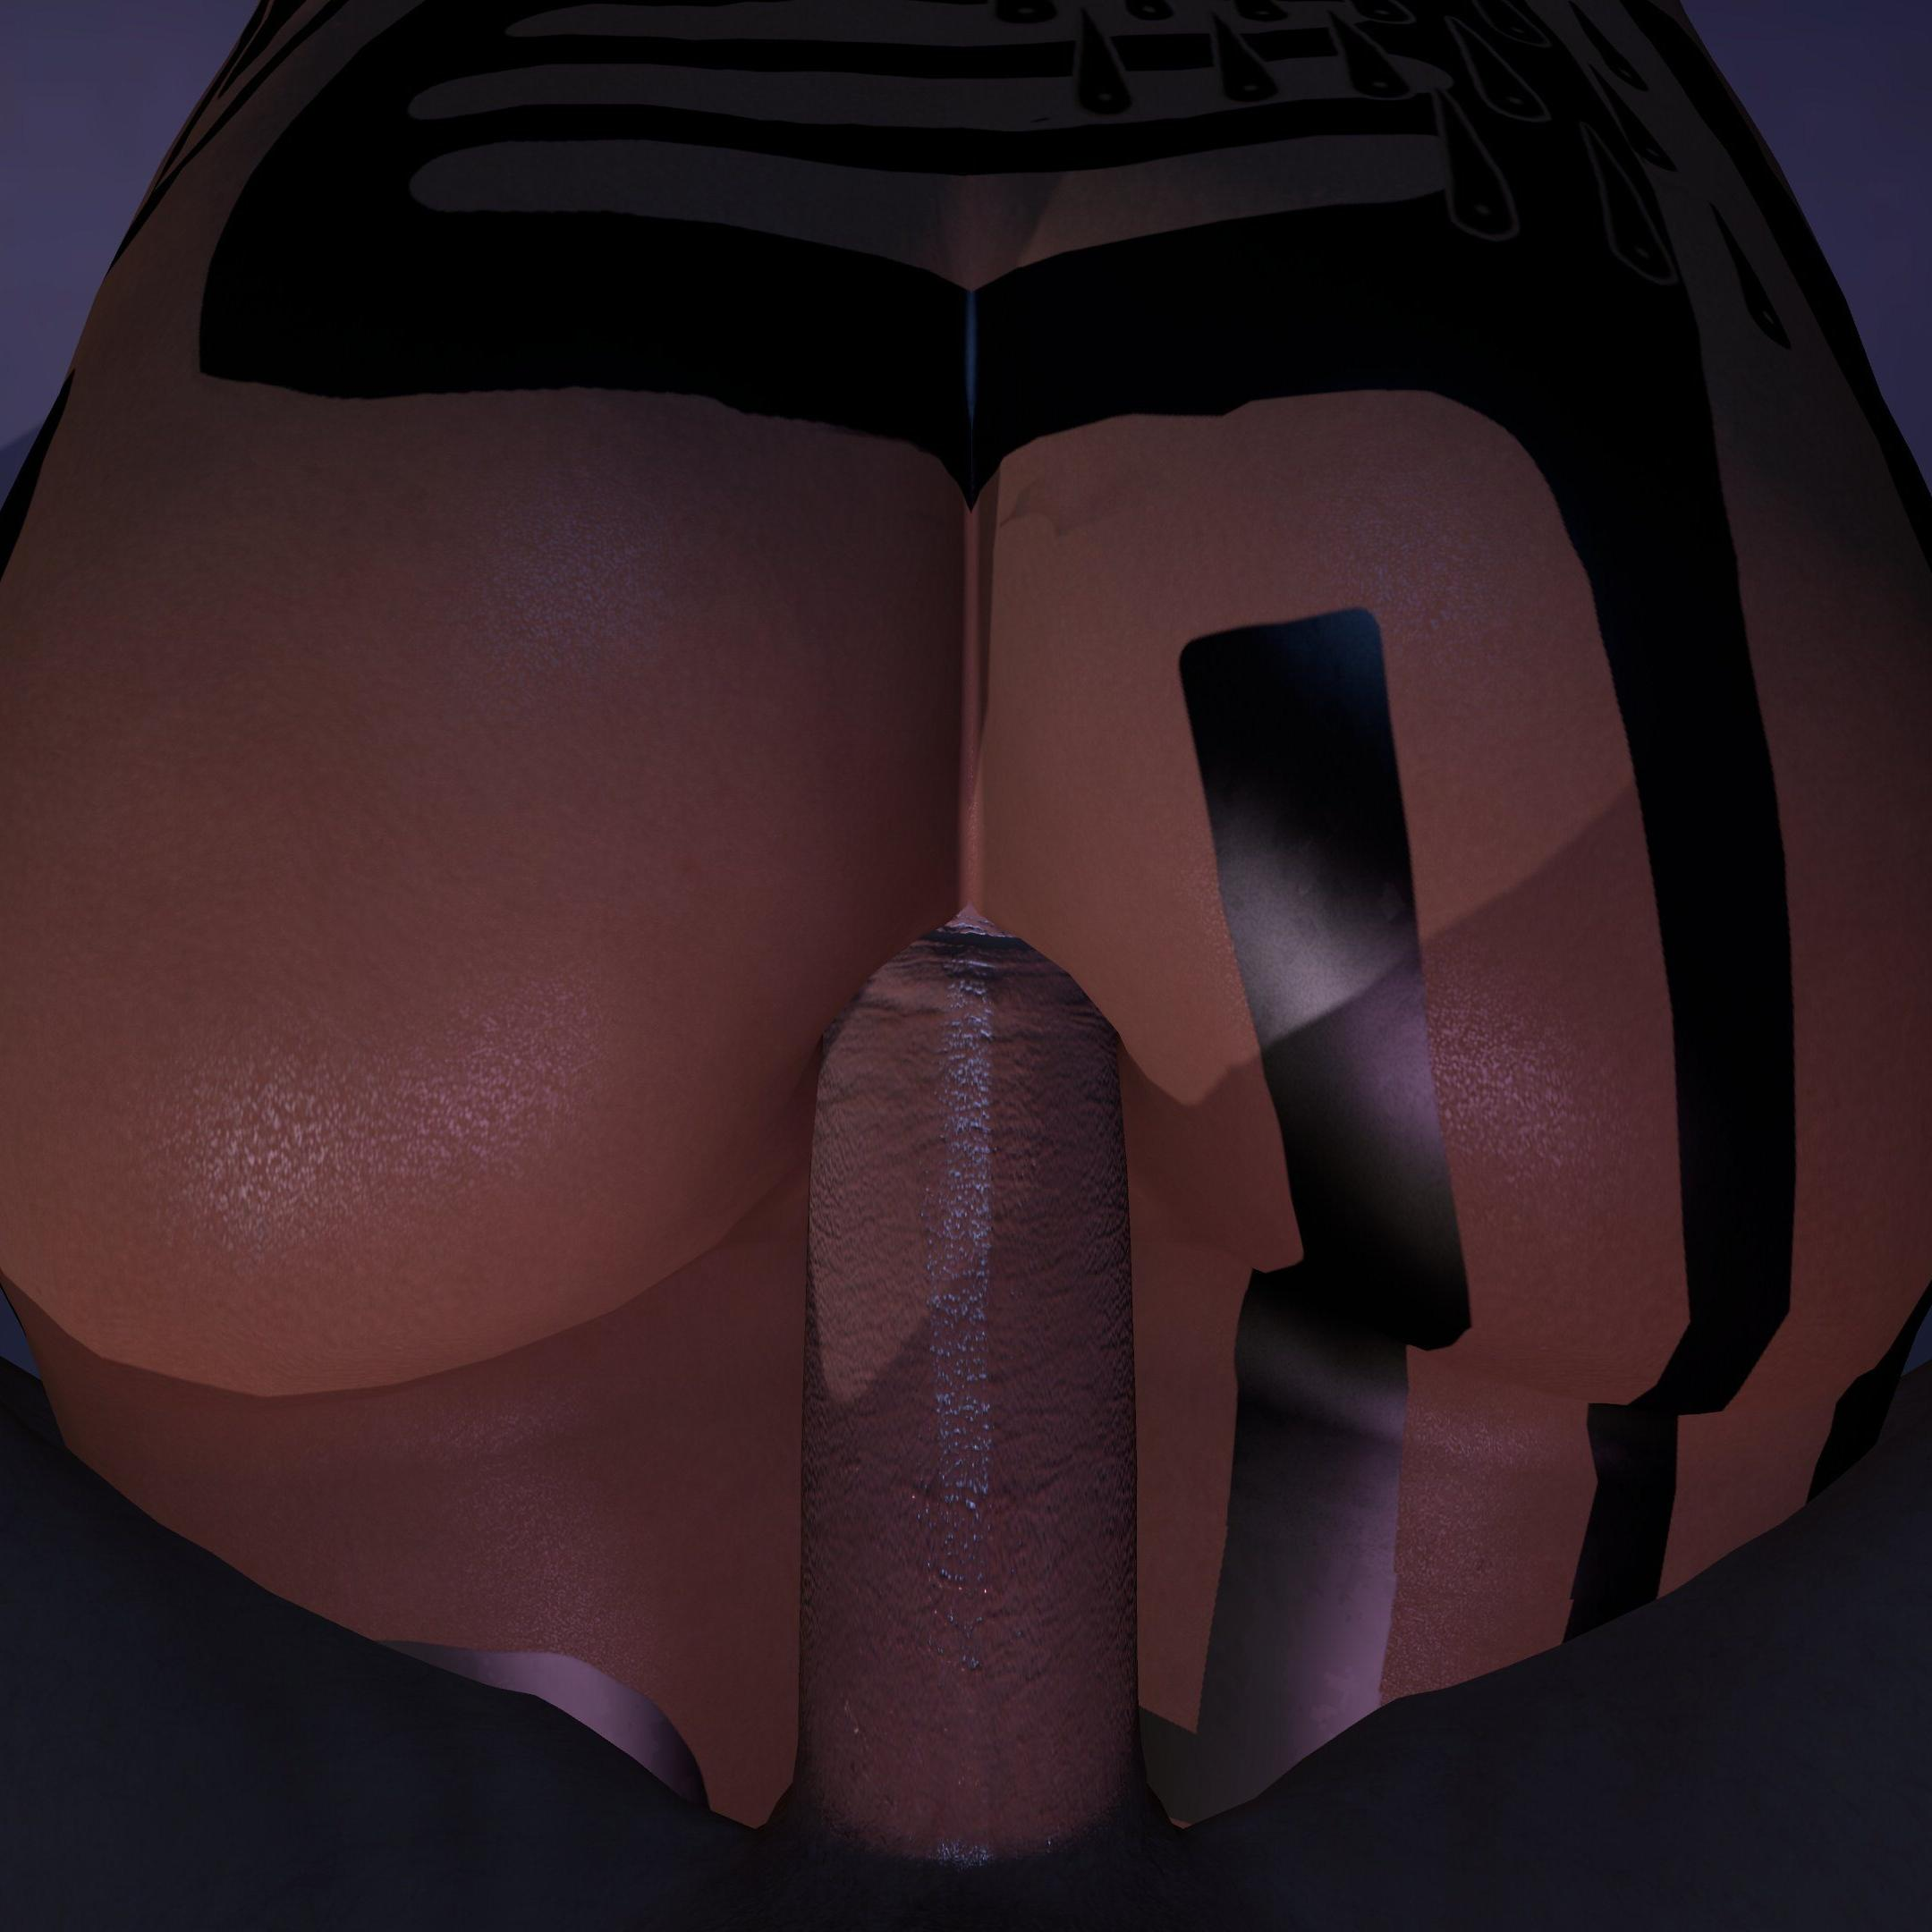 Mass Effect anaali porno